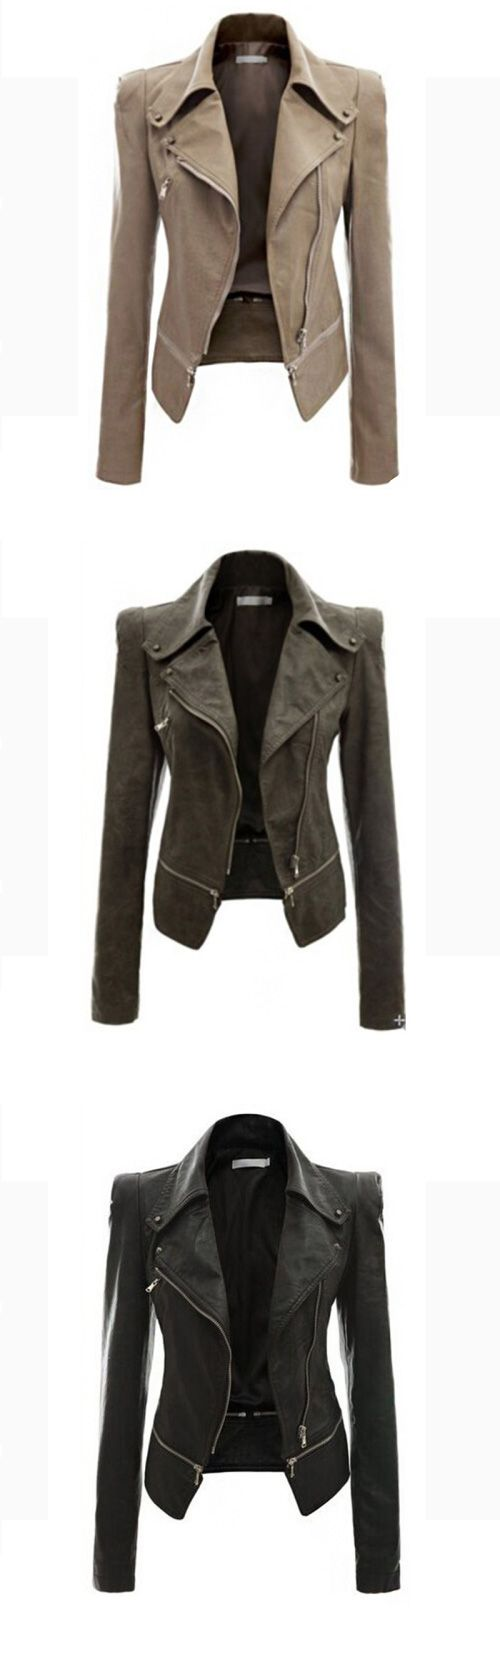 Women's Solid Black / Brown / Green Jackets